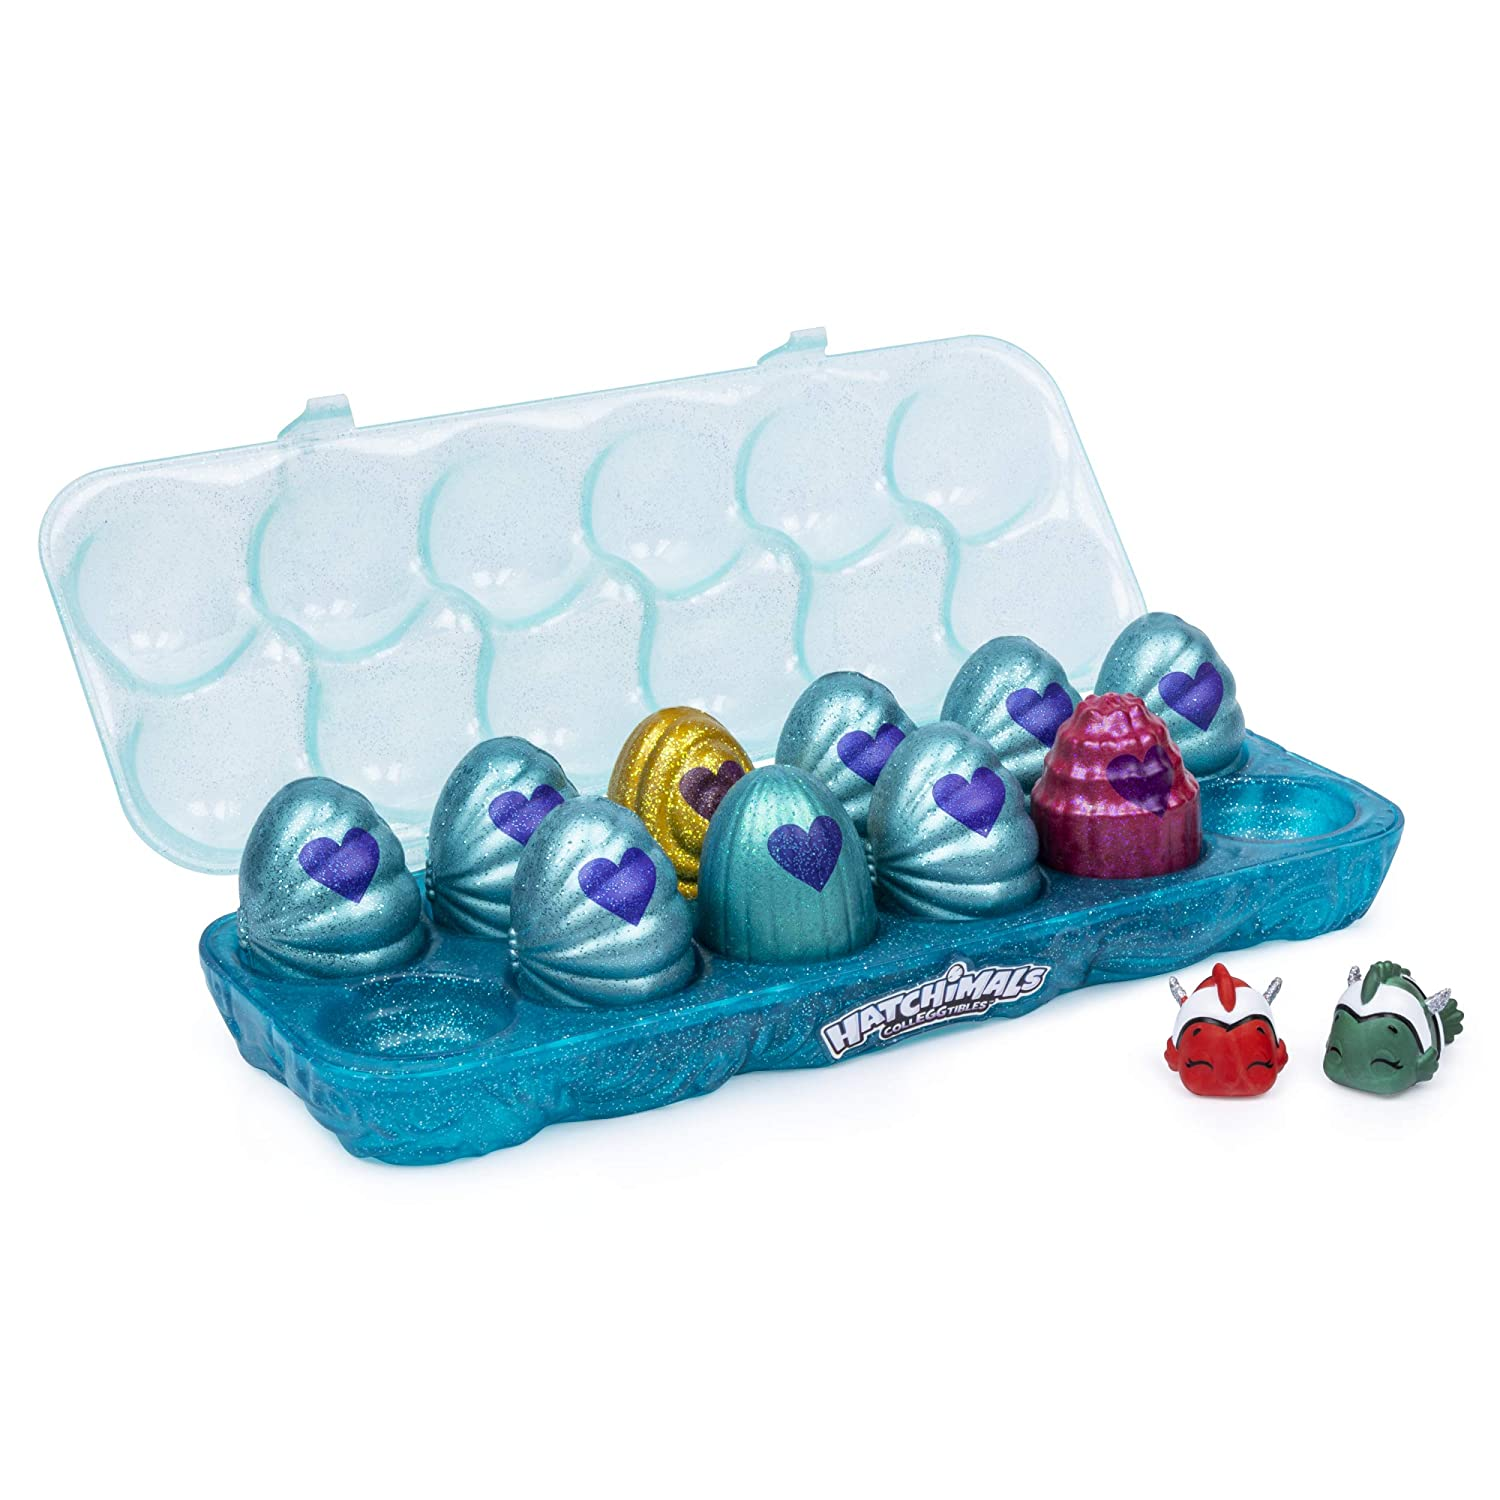 Hatchimals CollEGGtibles, Mermal Magic 12 Pack Egg Carton with Season 5, for Kids Aged 5 and Up (Styles May Vary)